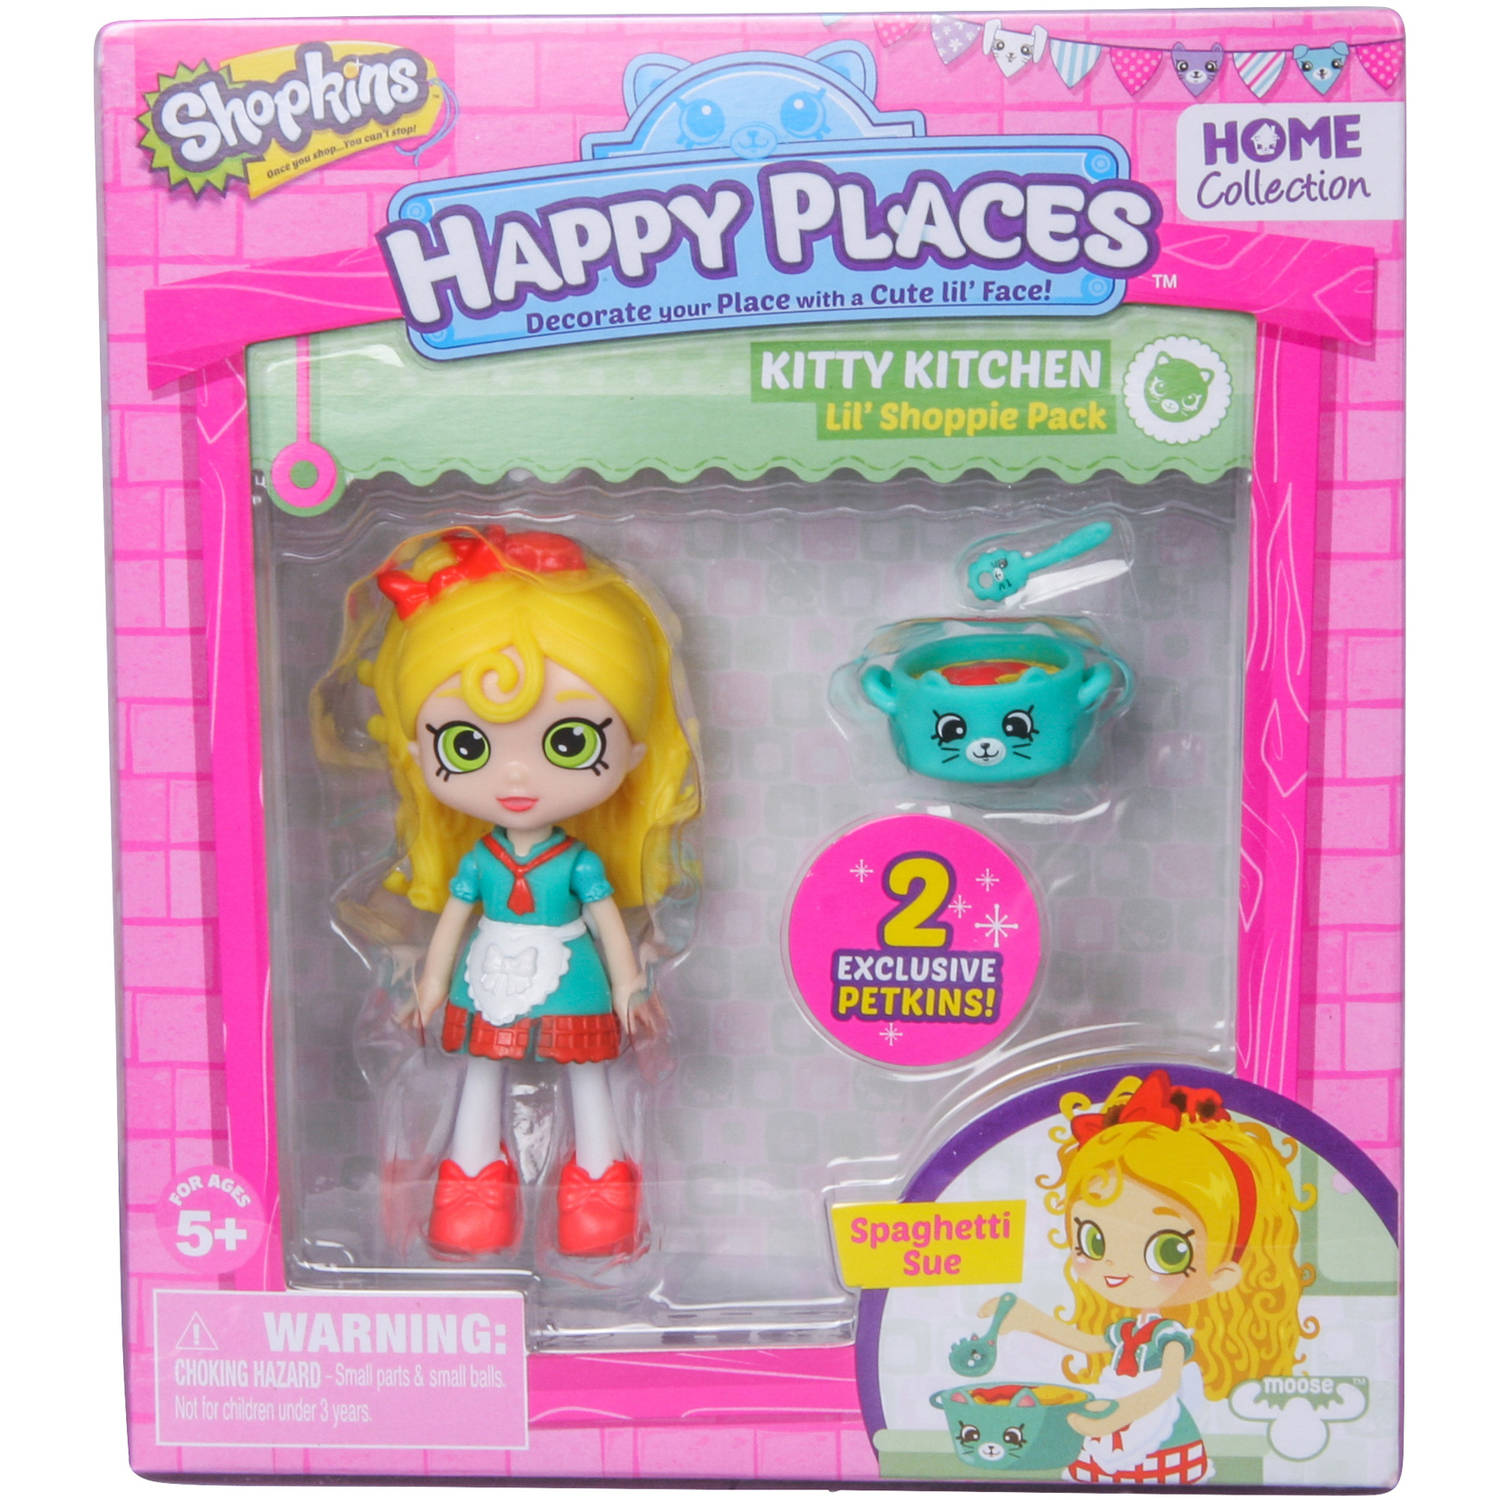 Shopkins Happy Places Doll Single Pack, Spagetti Sue